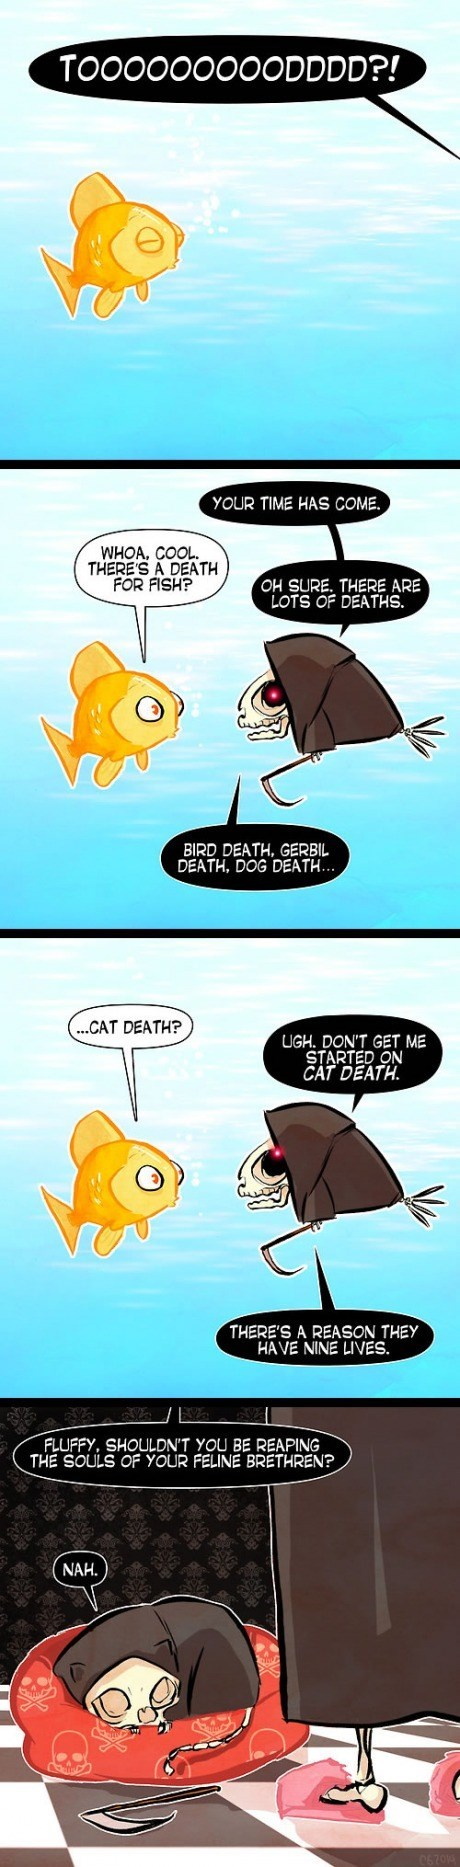 So That's Why Cats Have Nine Lives